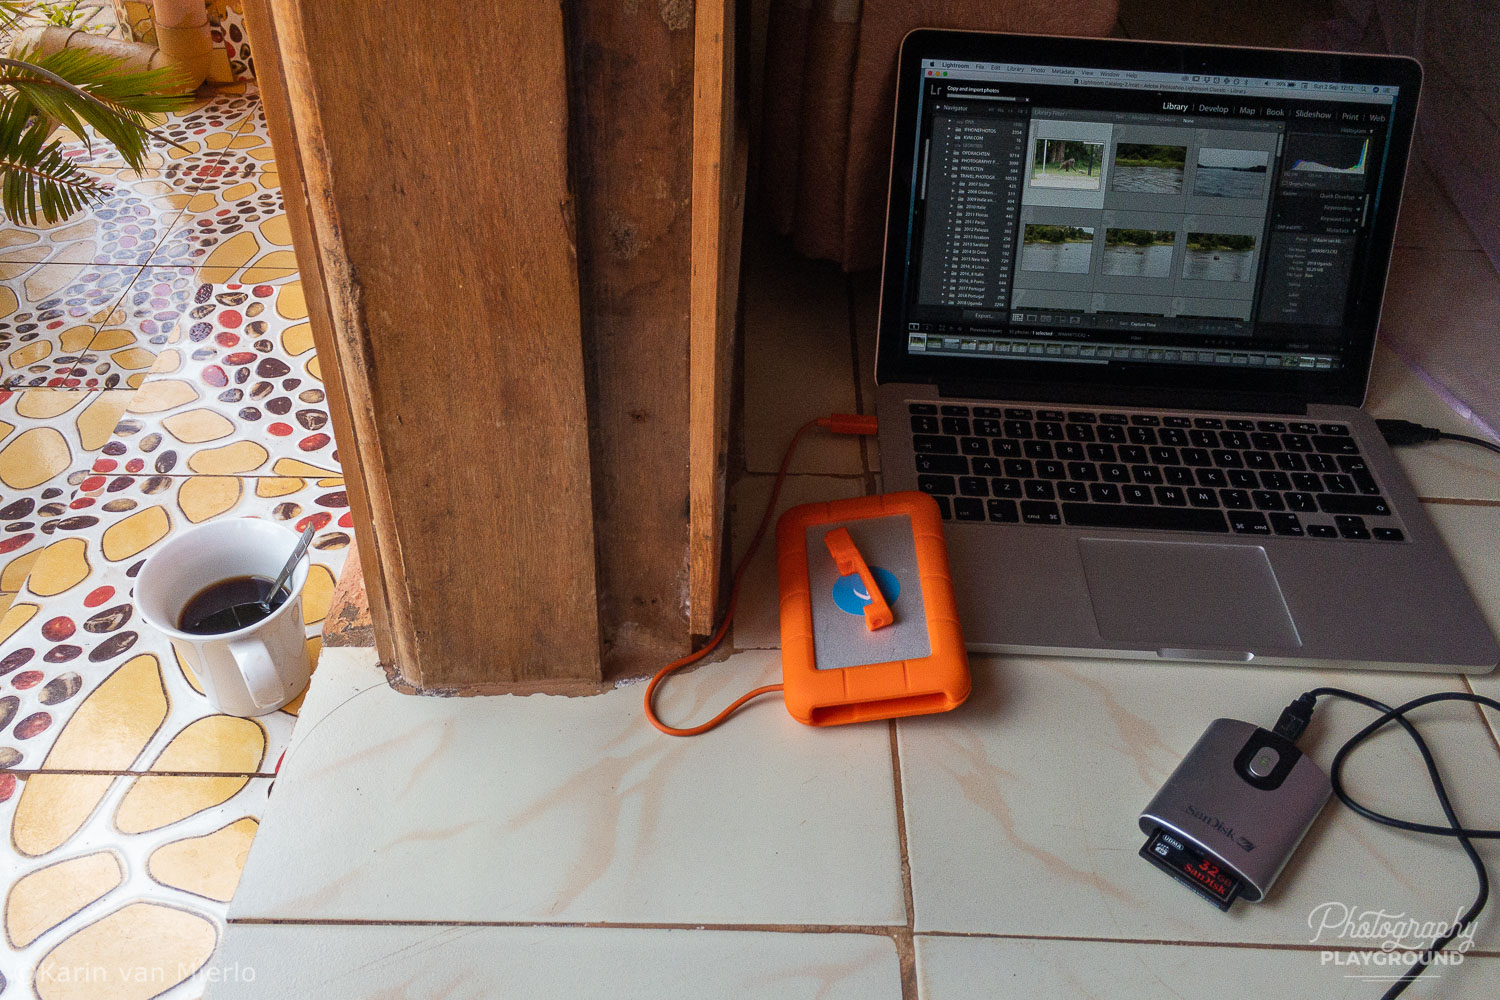 travel photography safety tips, portable photo storage, photo storage device, photo backup device | Photo: Uploading from the card reader to the LaCie Rugged external hard drive © Karin van Mierlo, Photography Playground